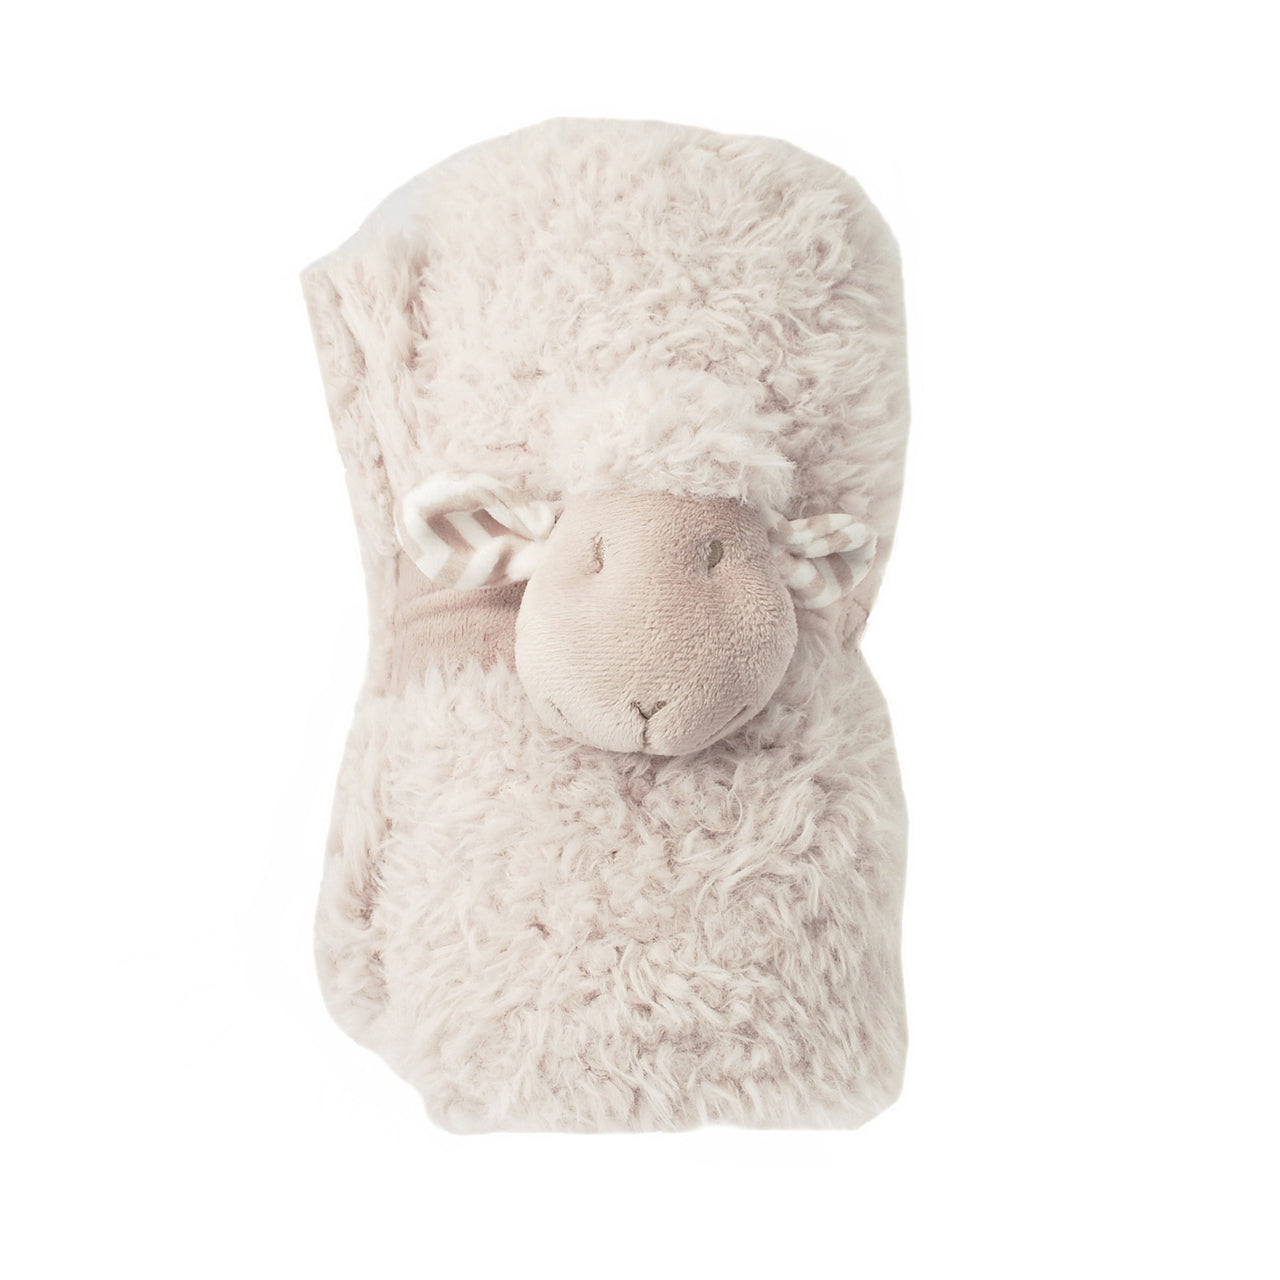 Blanket for a baby or child made from supersoft natural coloured sherpa fleece with a micro mink reverse. Cute lamb wraps round the blanket and fastens with velcro when rolled up.